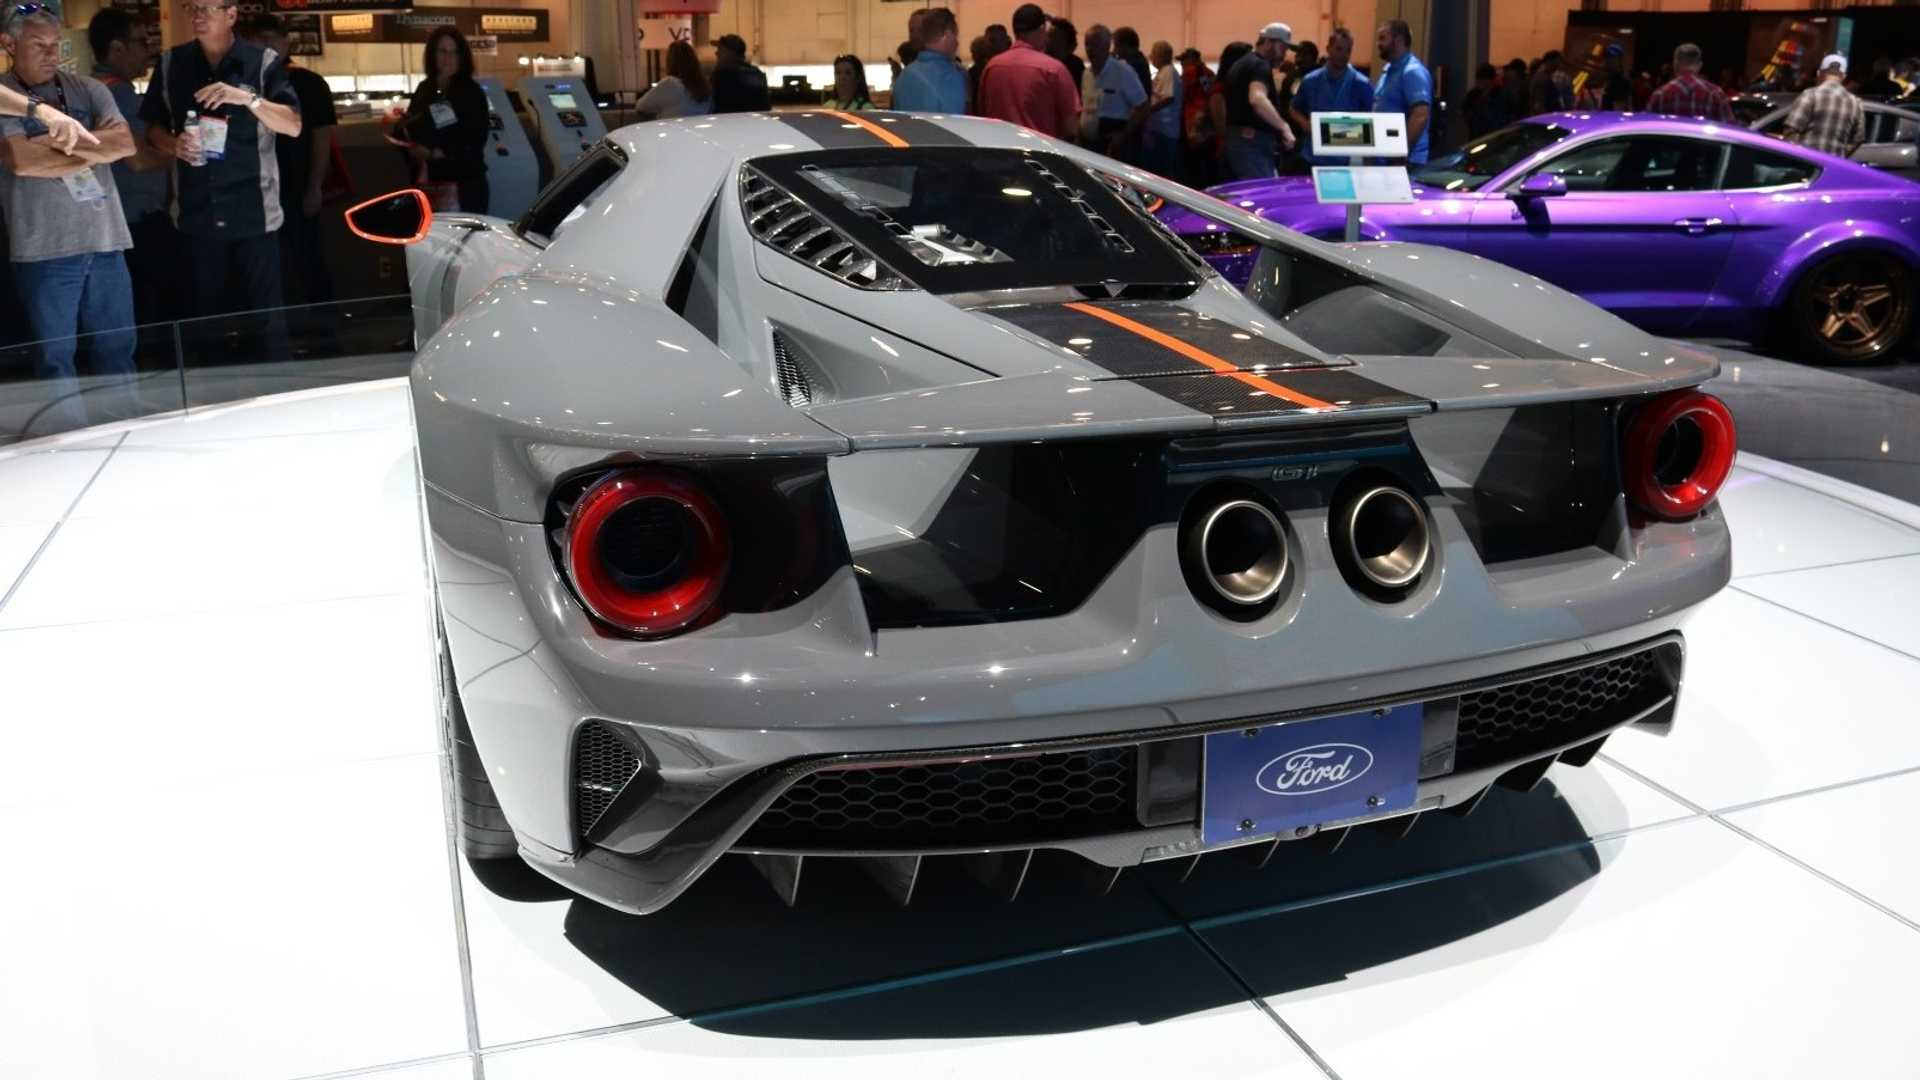 80 Concept of 2019 Ford Gt Price and Review by 2019 Ford Gt